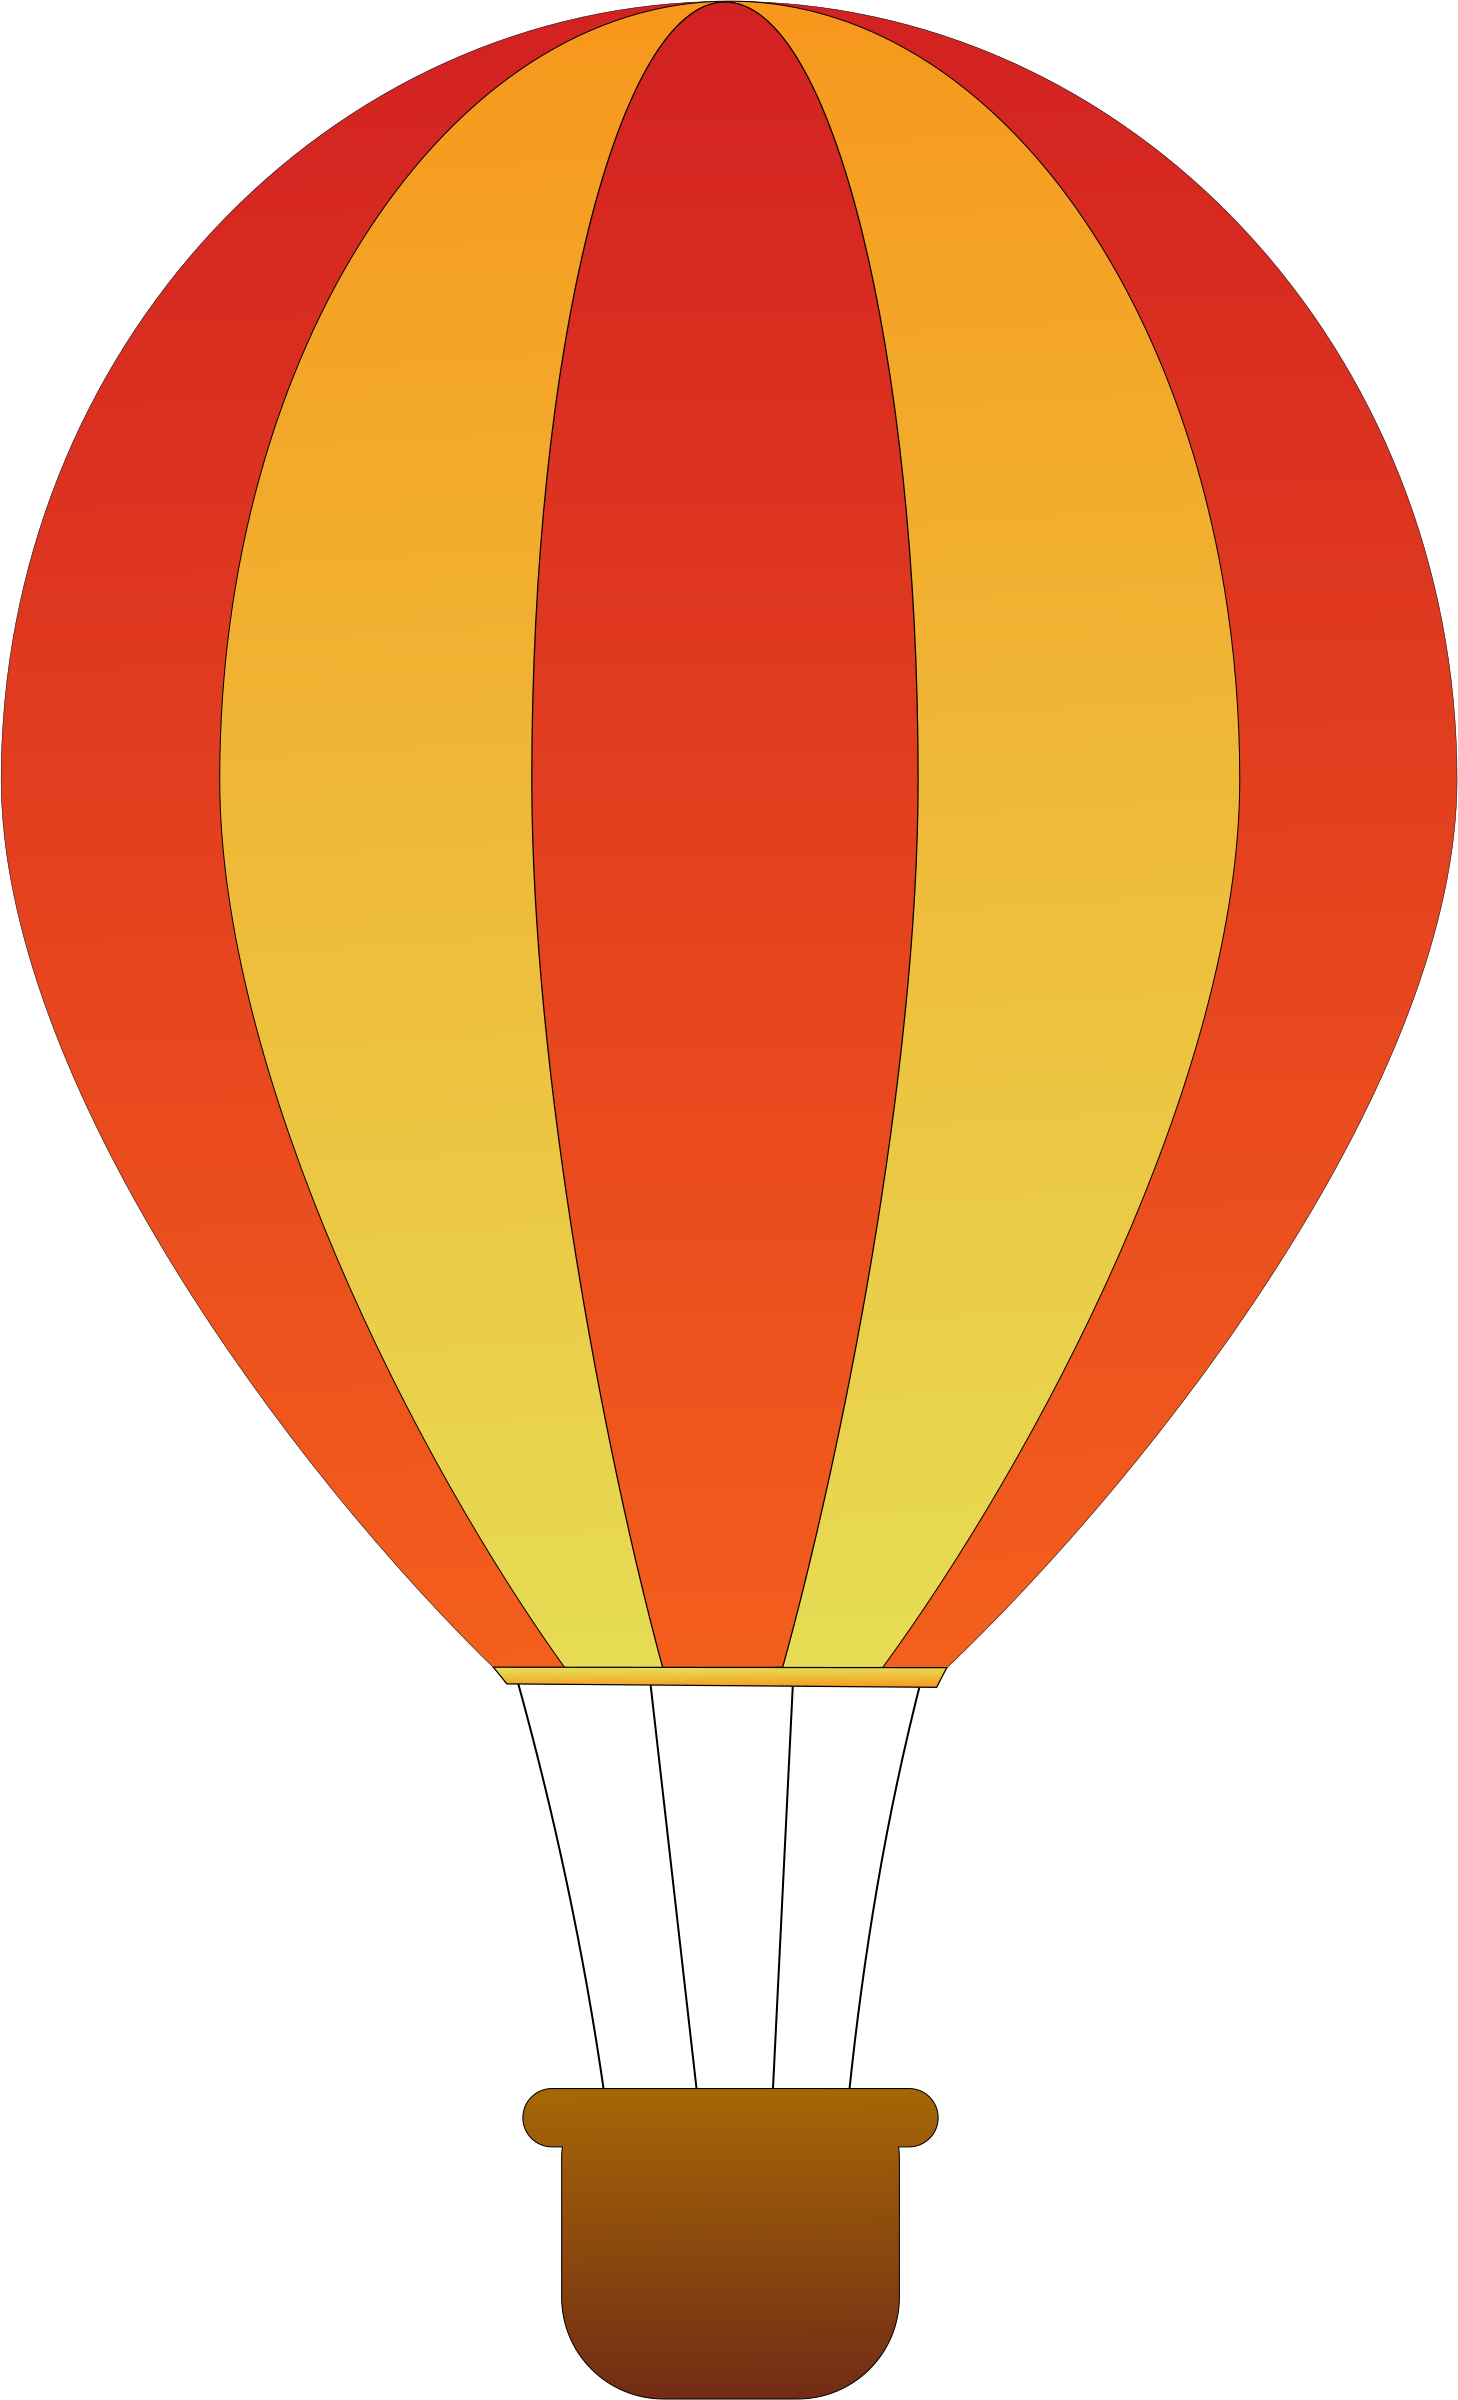 Red clipart hot air balloon. Vertical striped balloons big